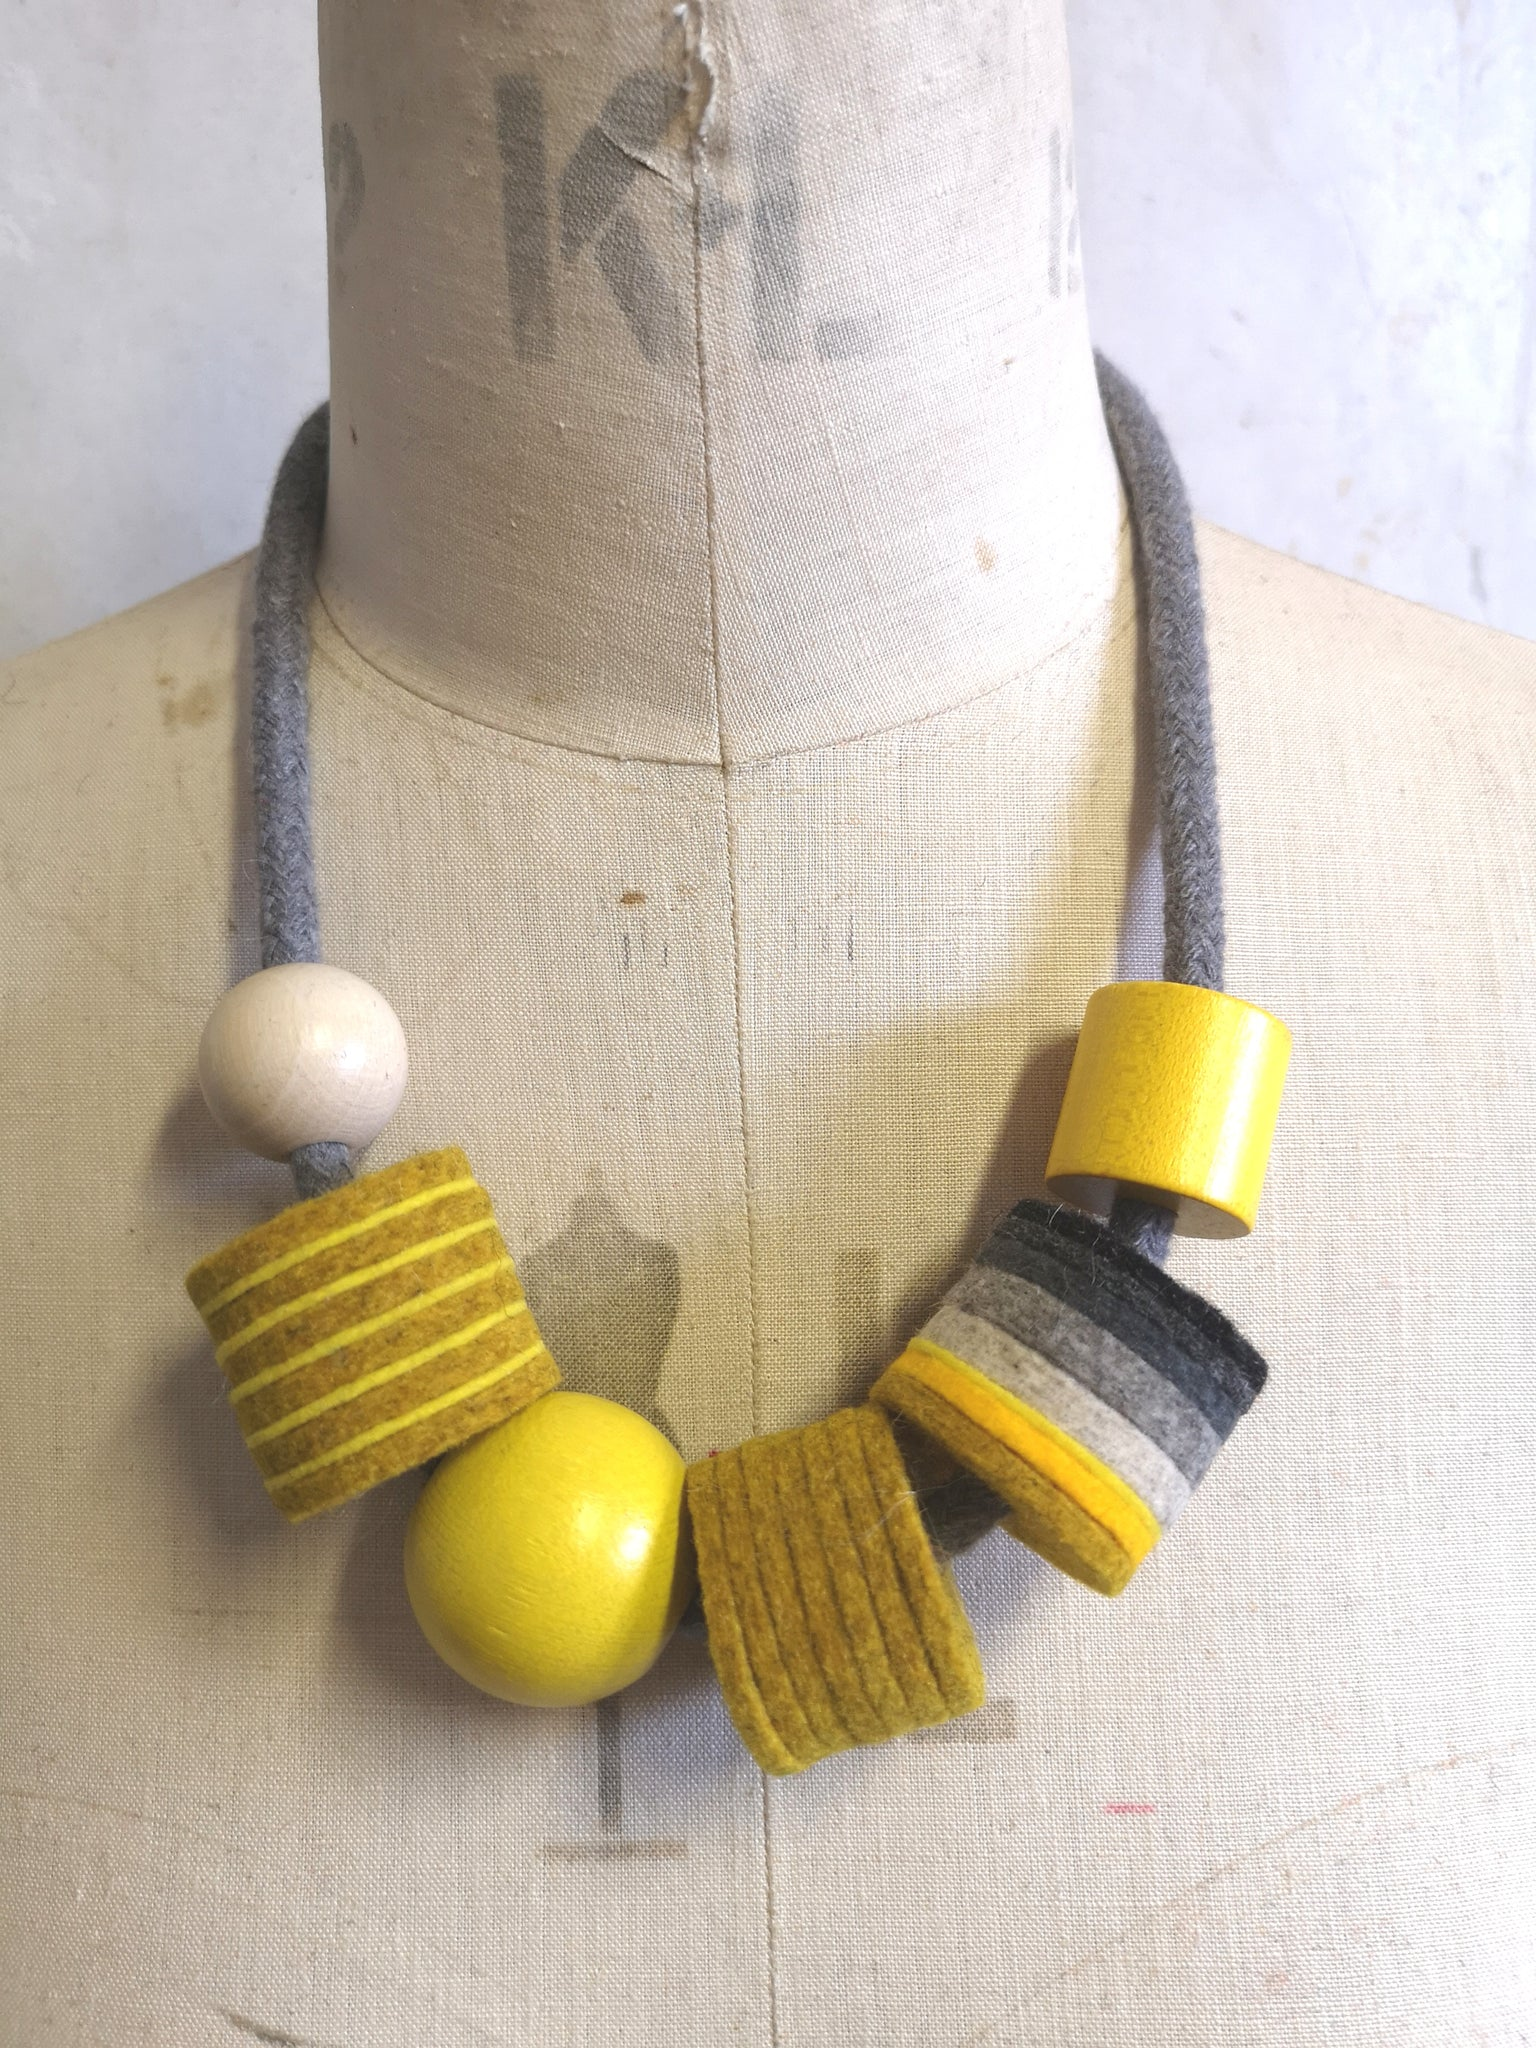 Industrial Felt, Wood and Rope Necklace - Mustard & Grey